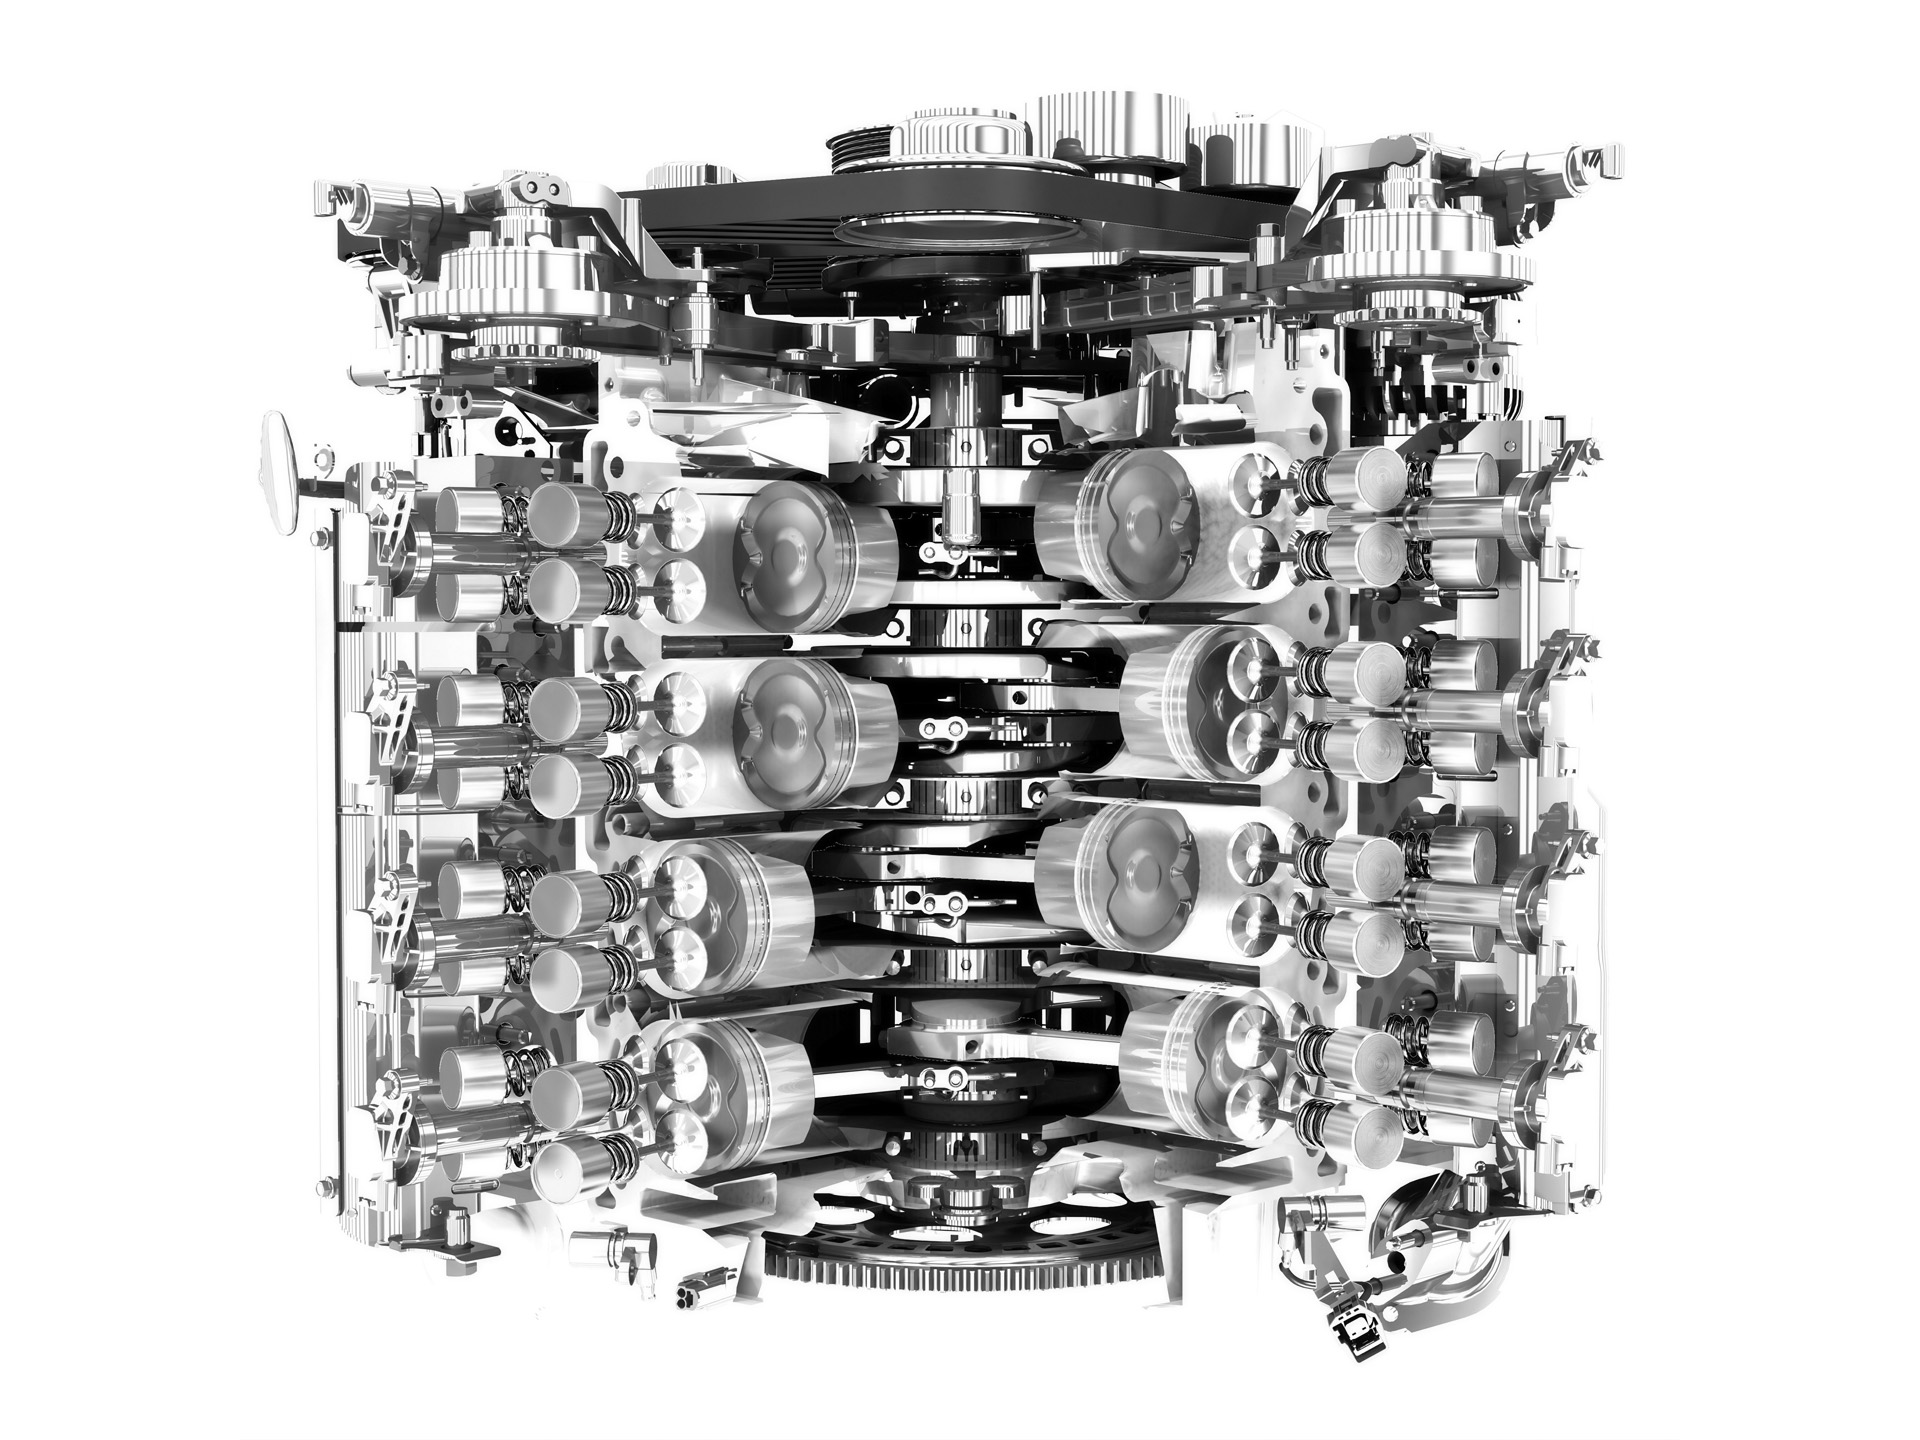 Sample P1430 Engine